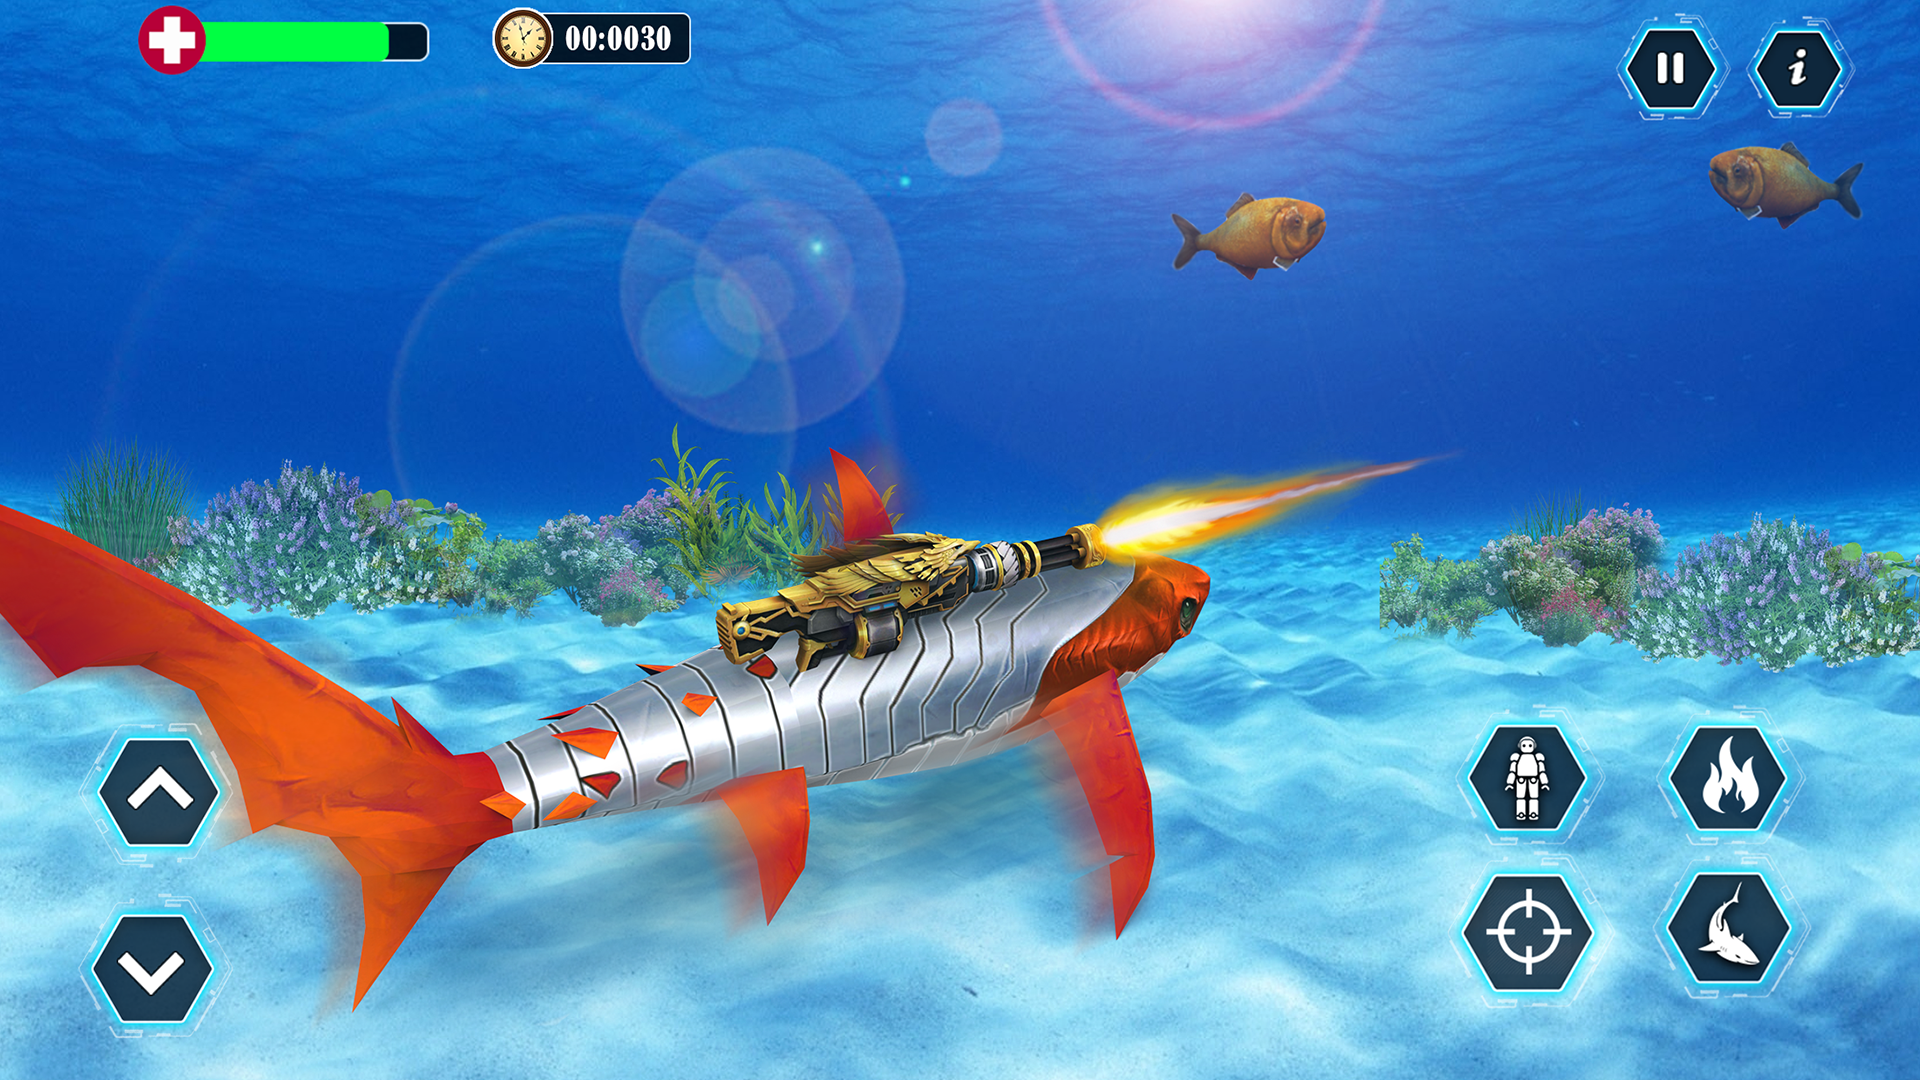 Robot Shark Transform 2018 - Shark Simulator Free: Amazon.es: Amazon.es